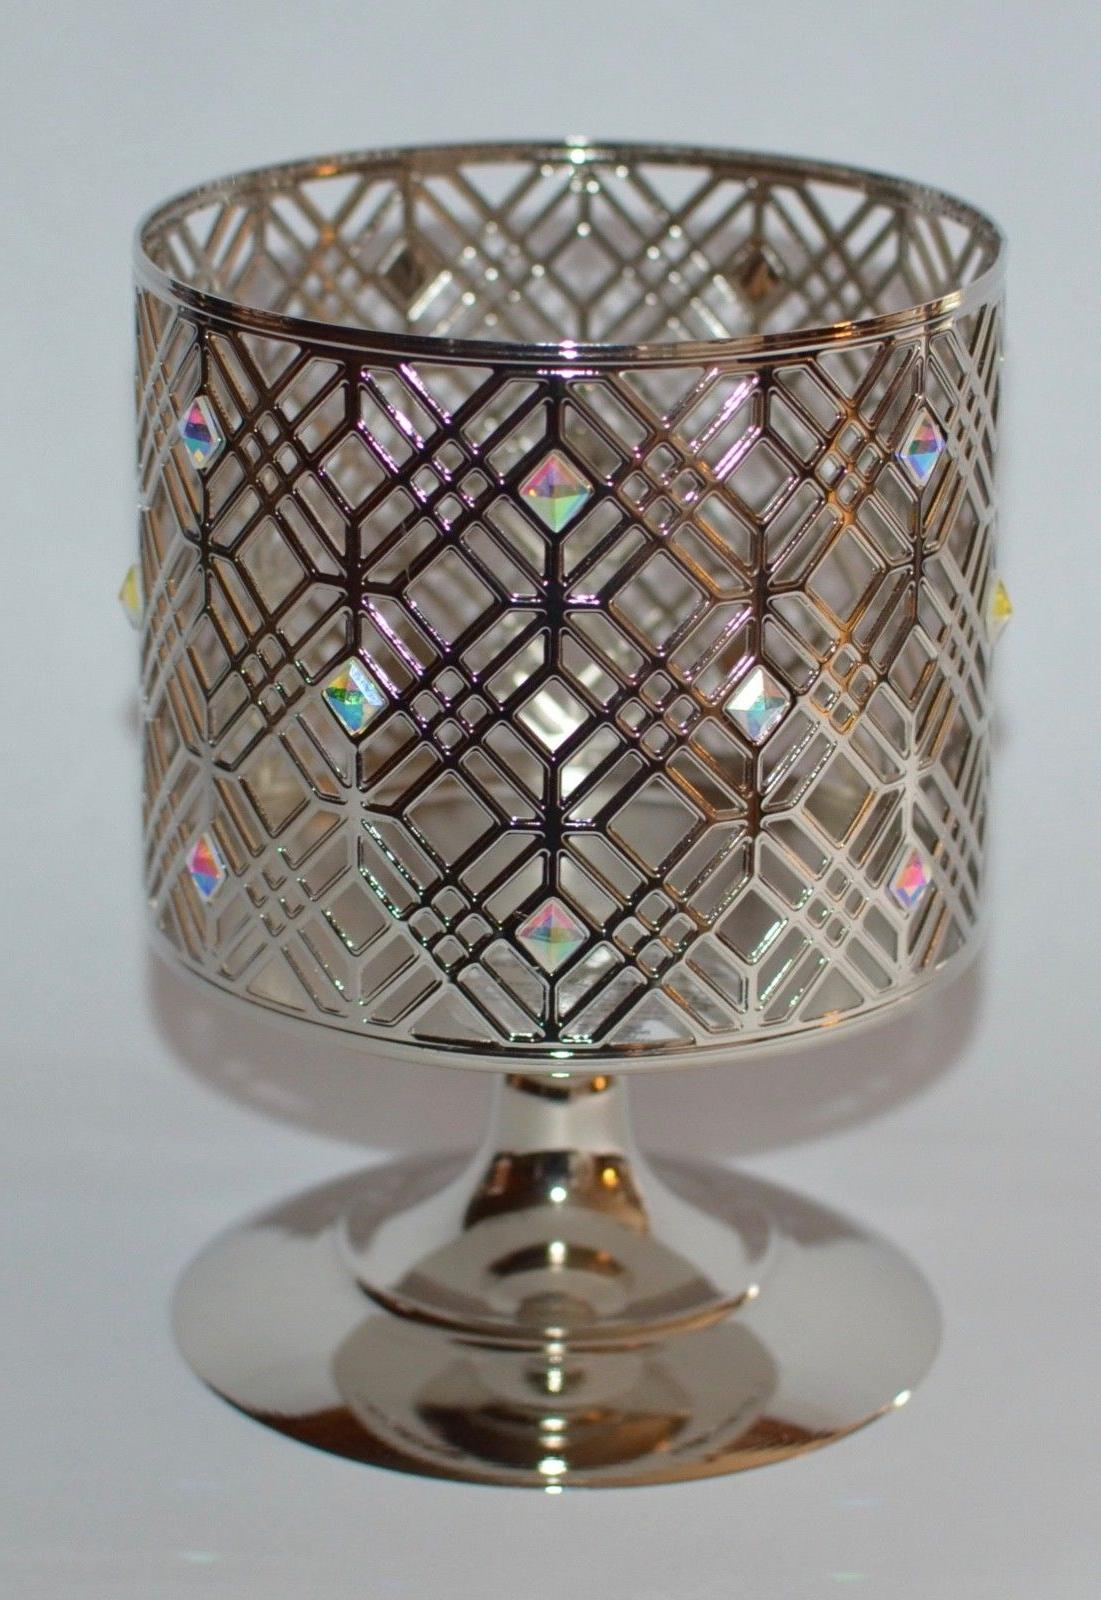 Bath and Body Works Geo Bling Pedestal 3 Wick Candle Holder.